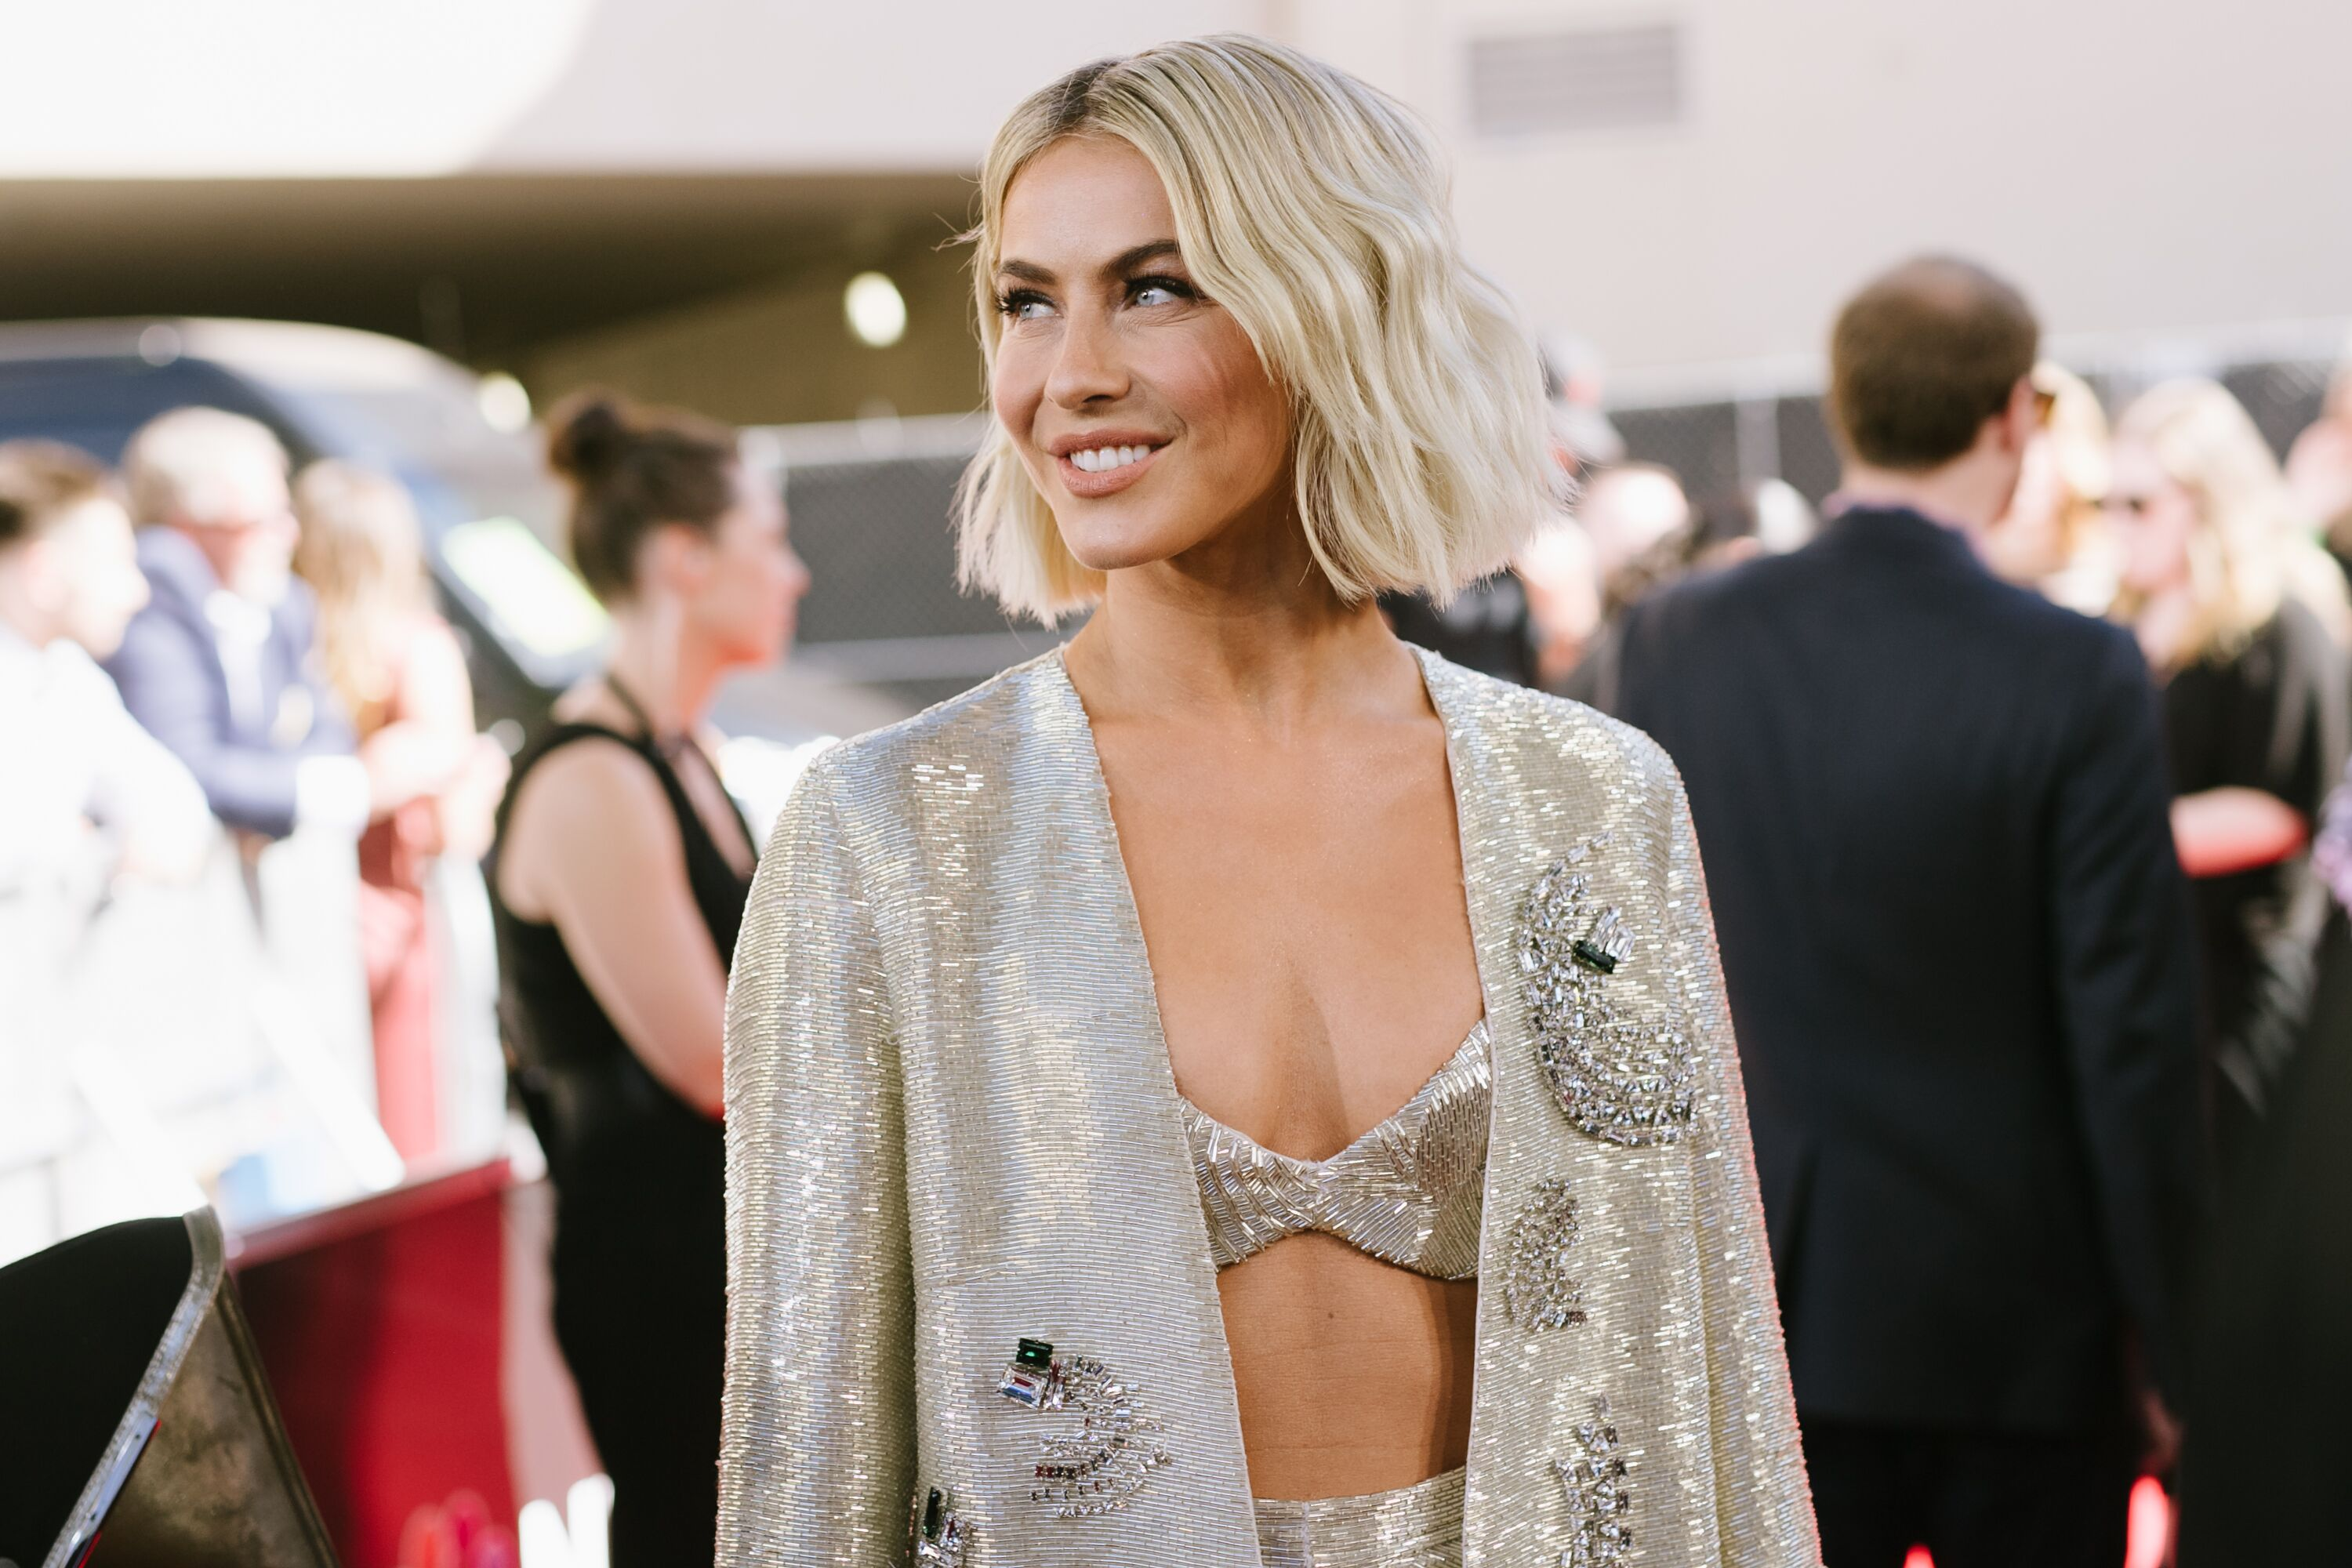 Julianne Hough Julianne Hough at the 2019 Billboard Music Awards at MGM Grand Garden Arena in Las Vegas | Source: Getty Images